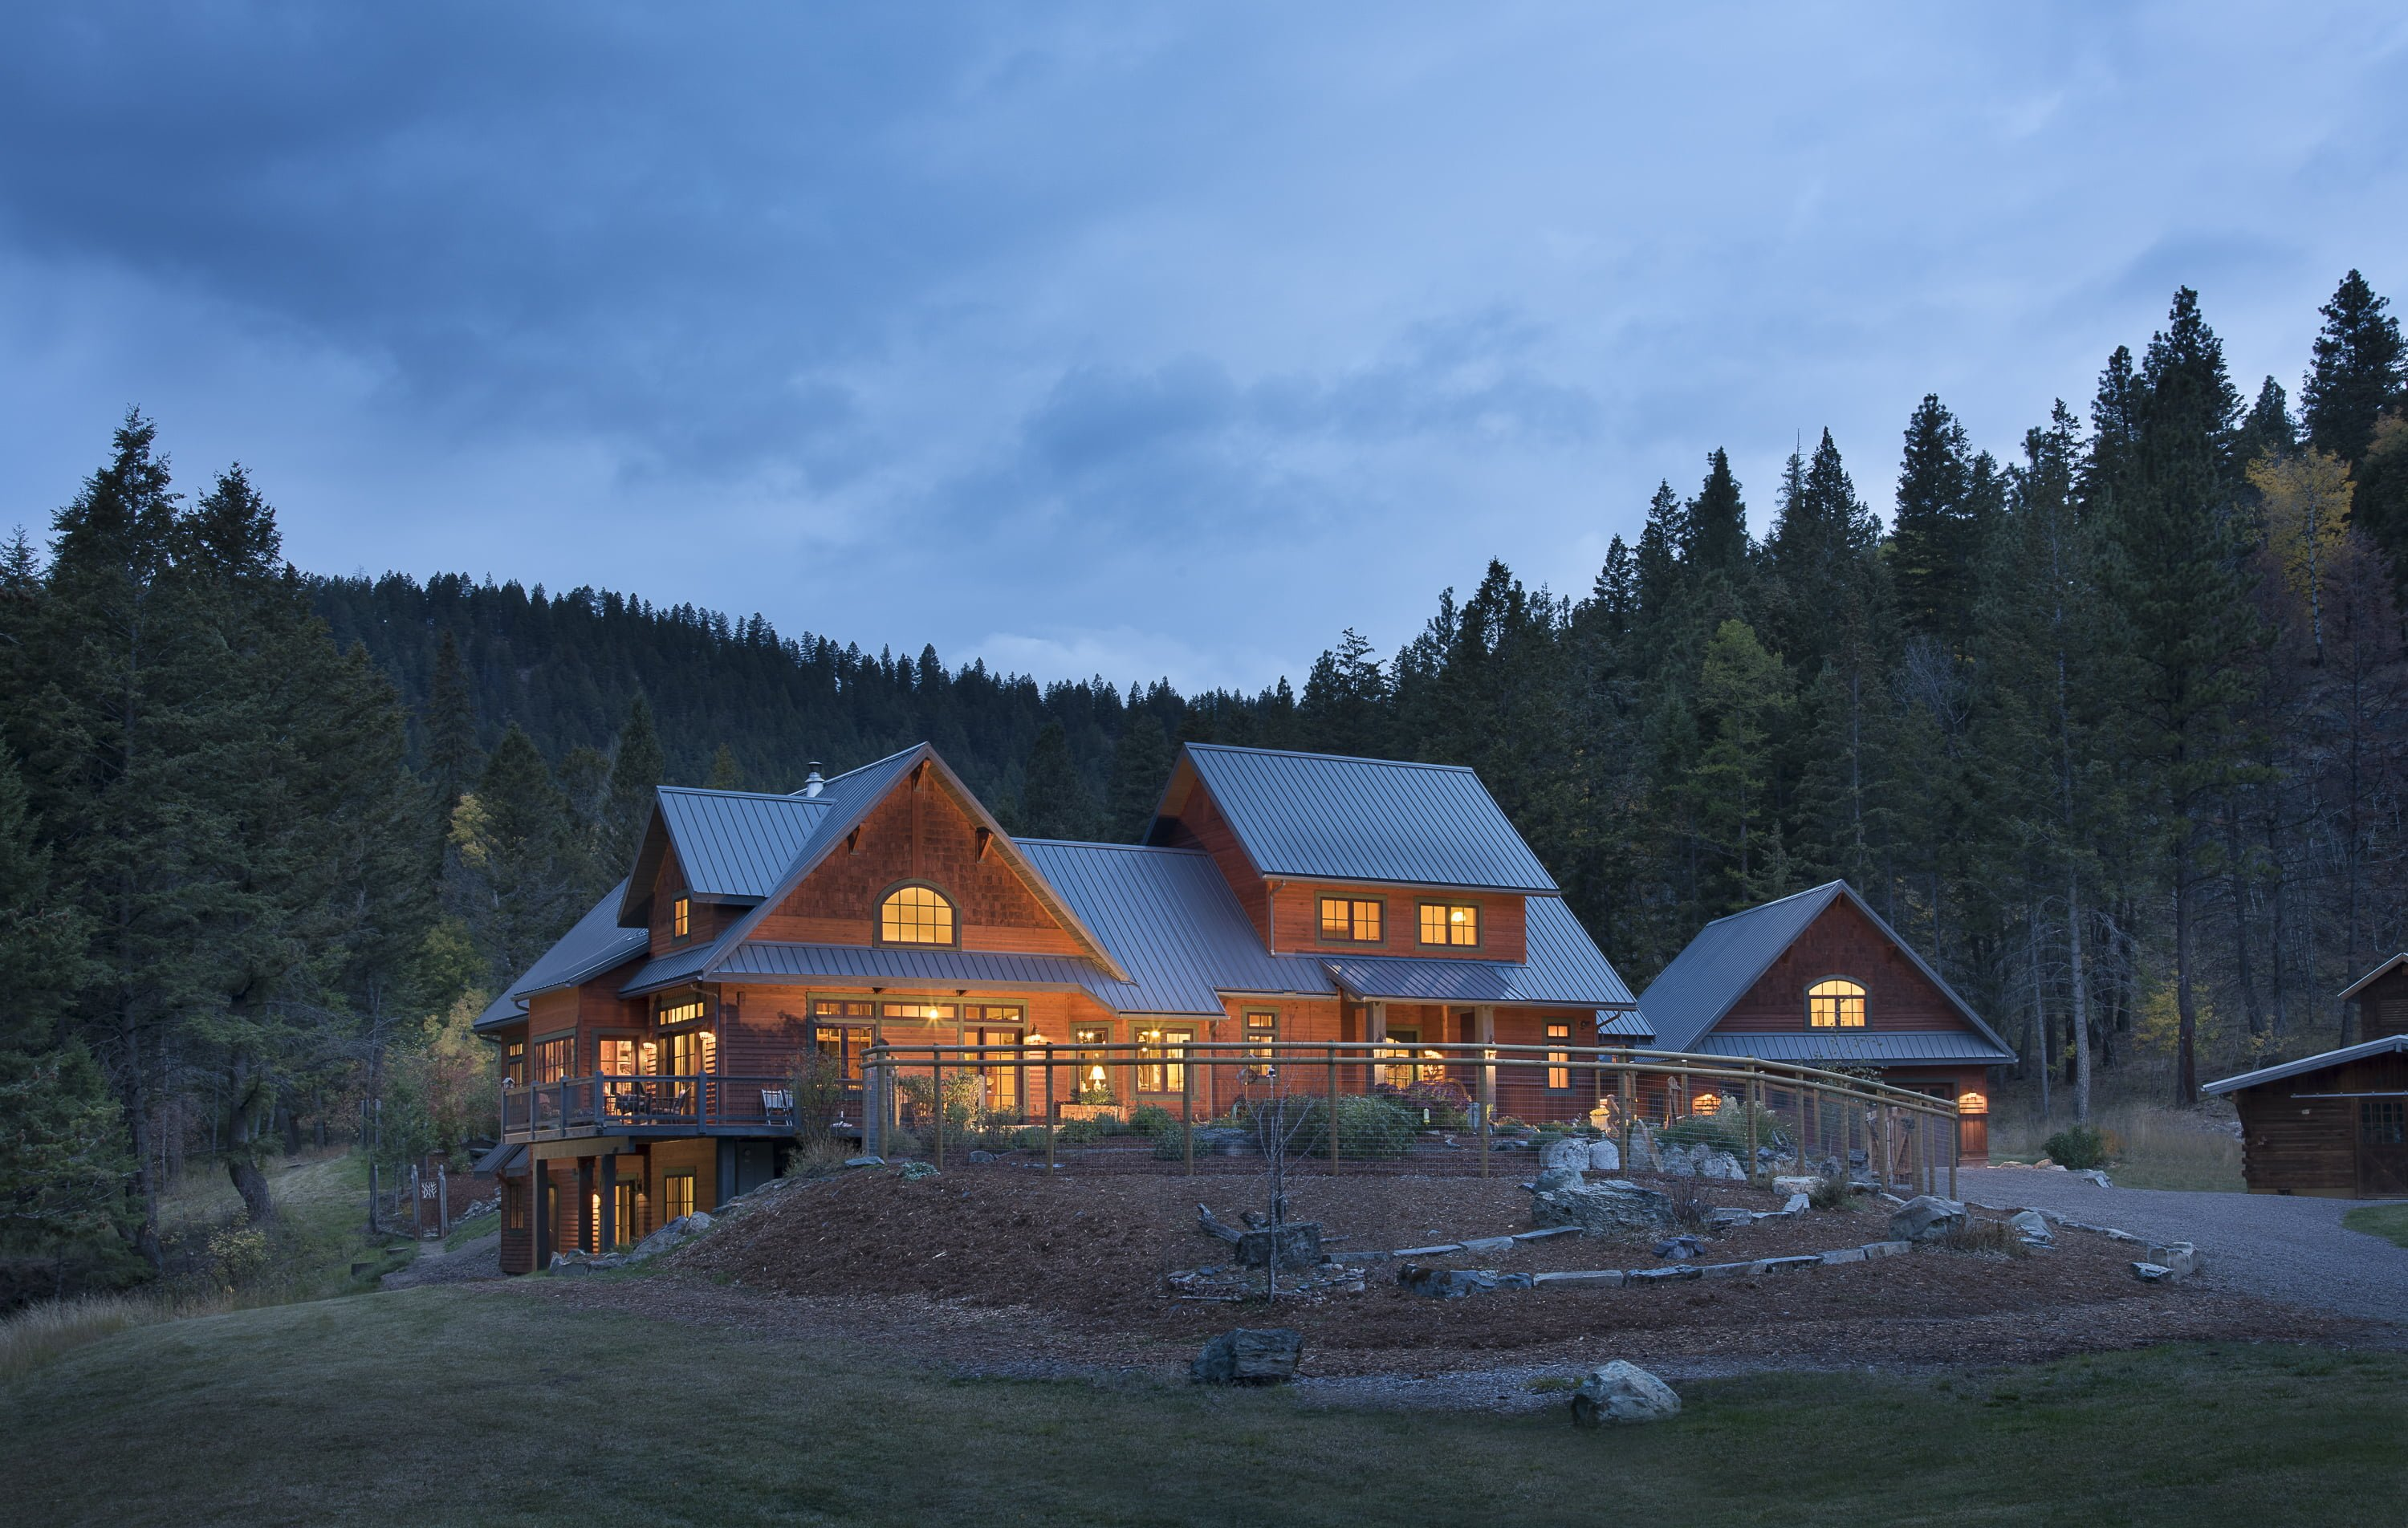 NW Montana – Sanctuary Retreat Center